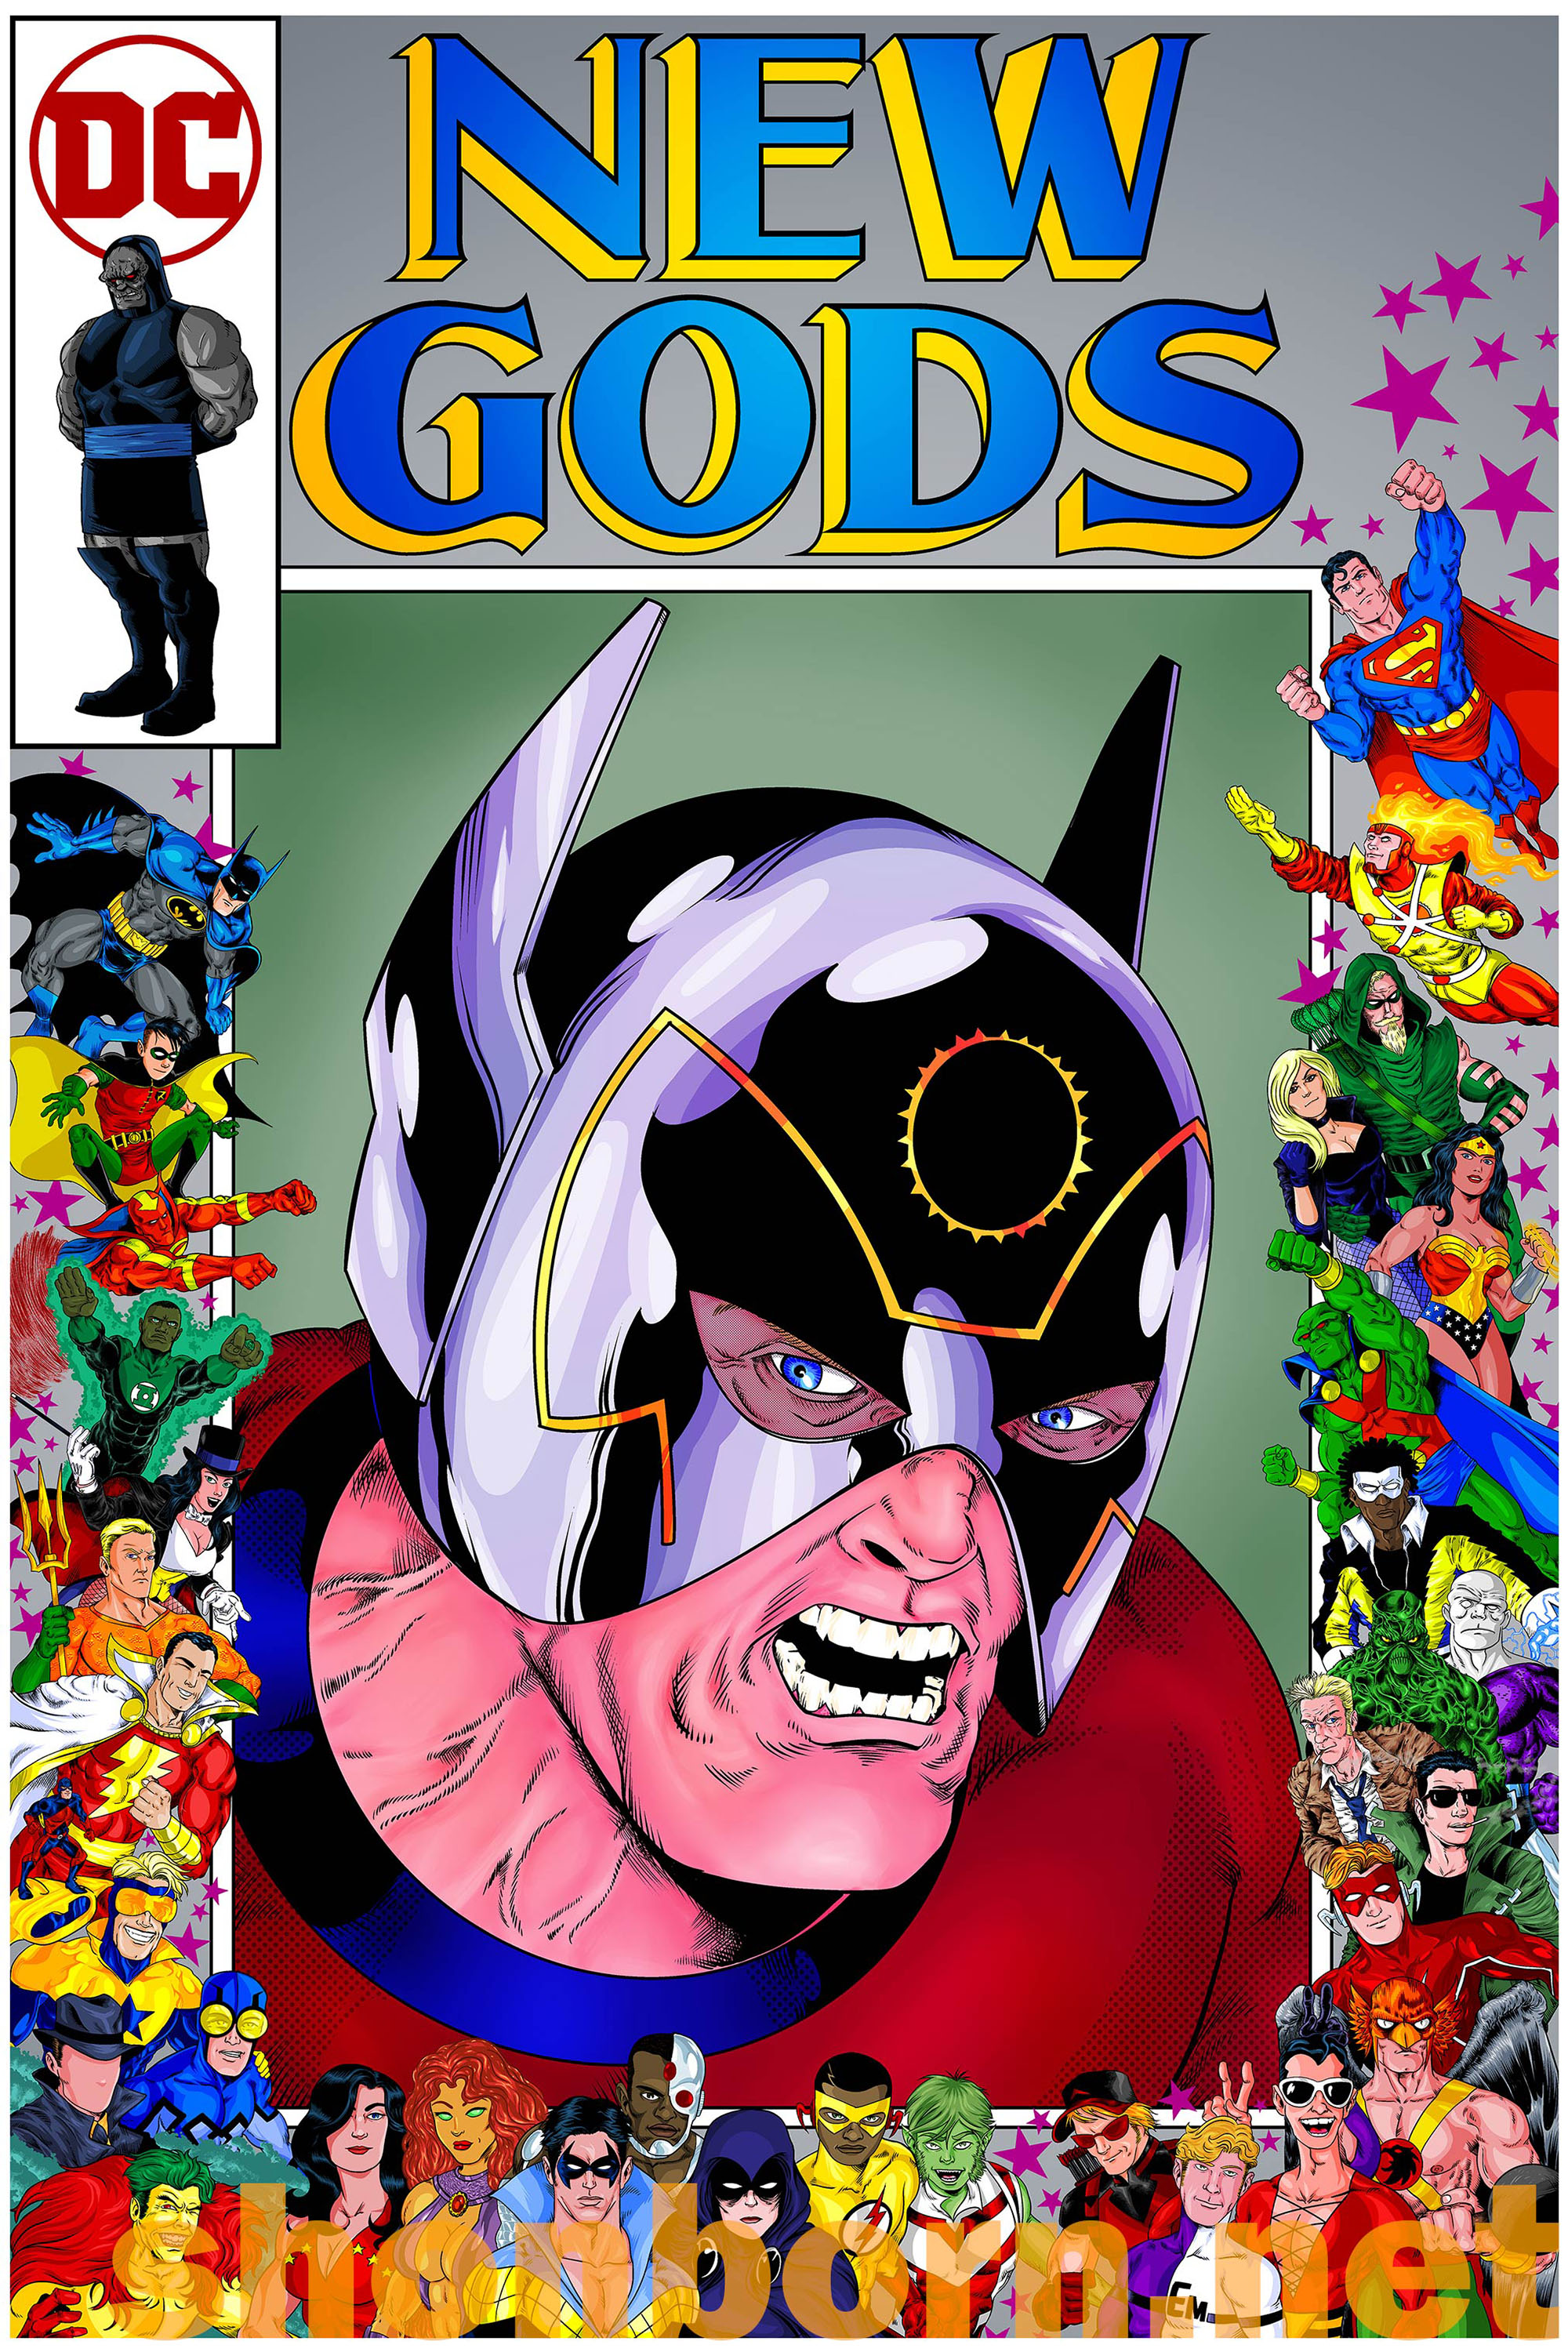 87. Orion of the New Gods